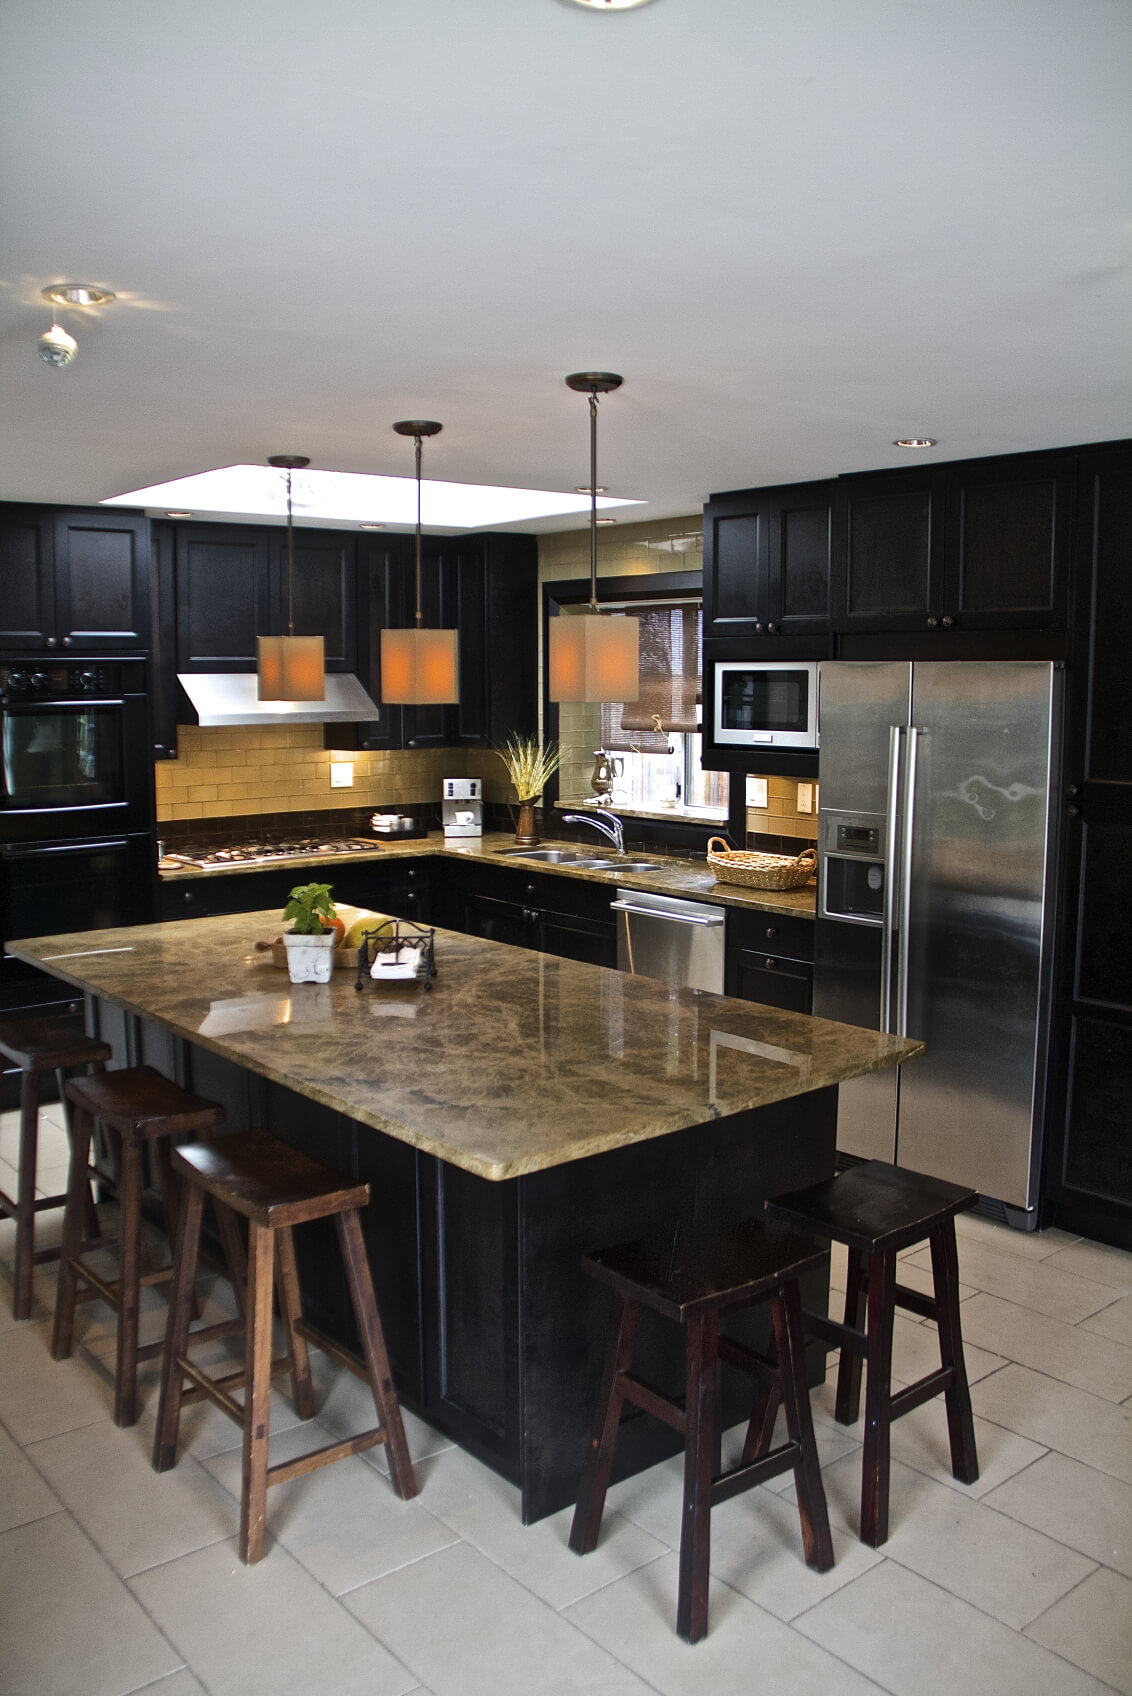 Contemporary Black L Shaped Kitchen With Long Island Set On White Tile Floor .